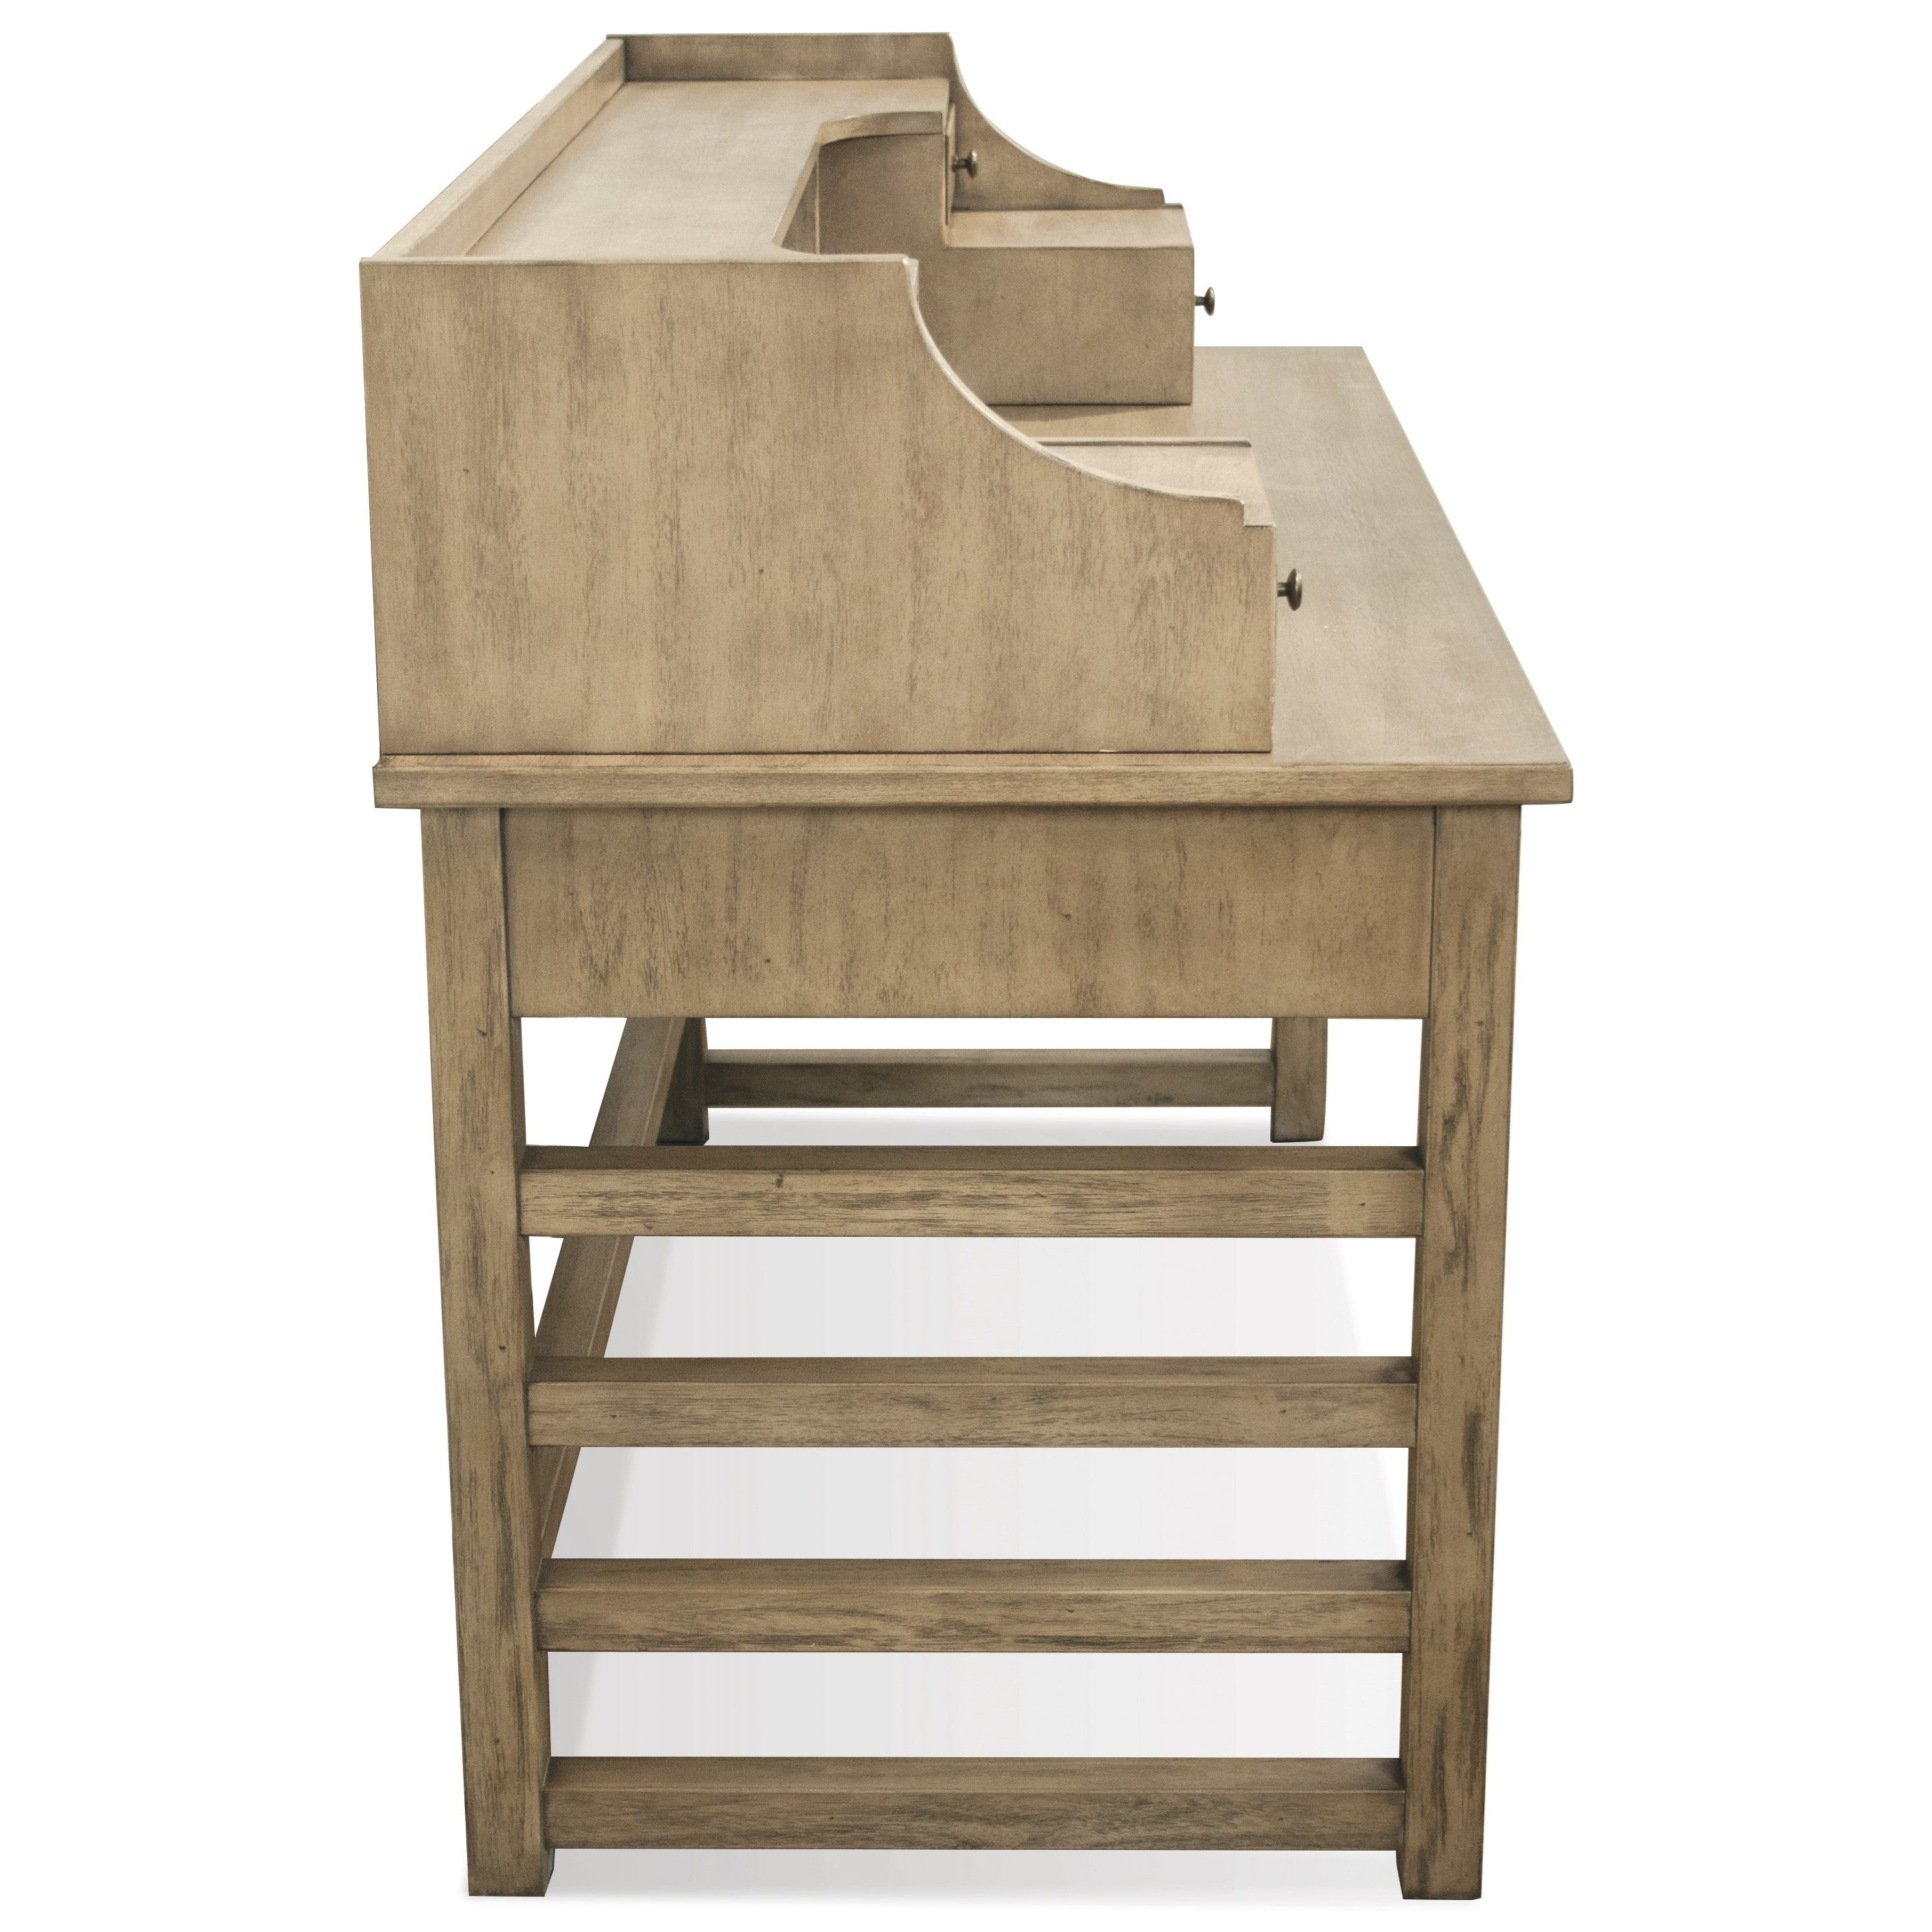 Riverside furniture perspectives 28131 leg desk with hutch - Home office furniture components ...